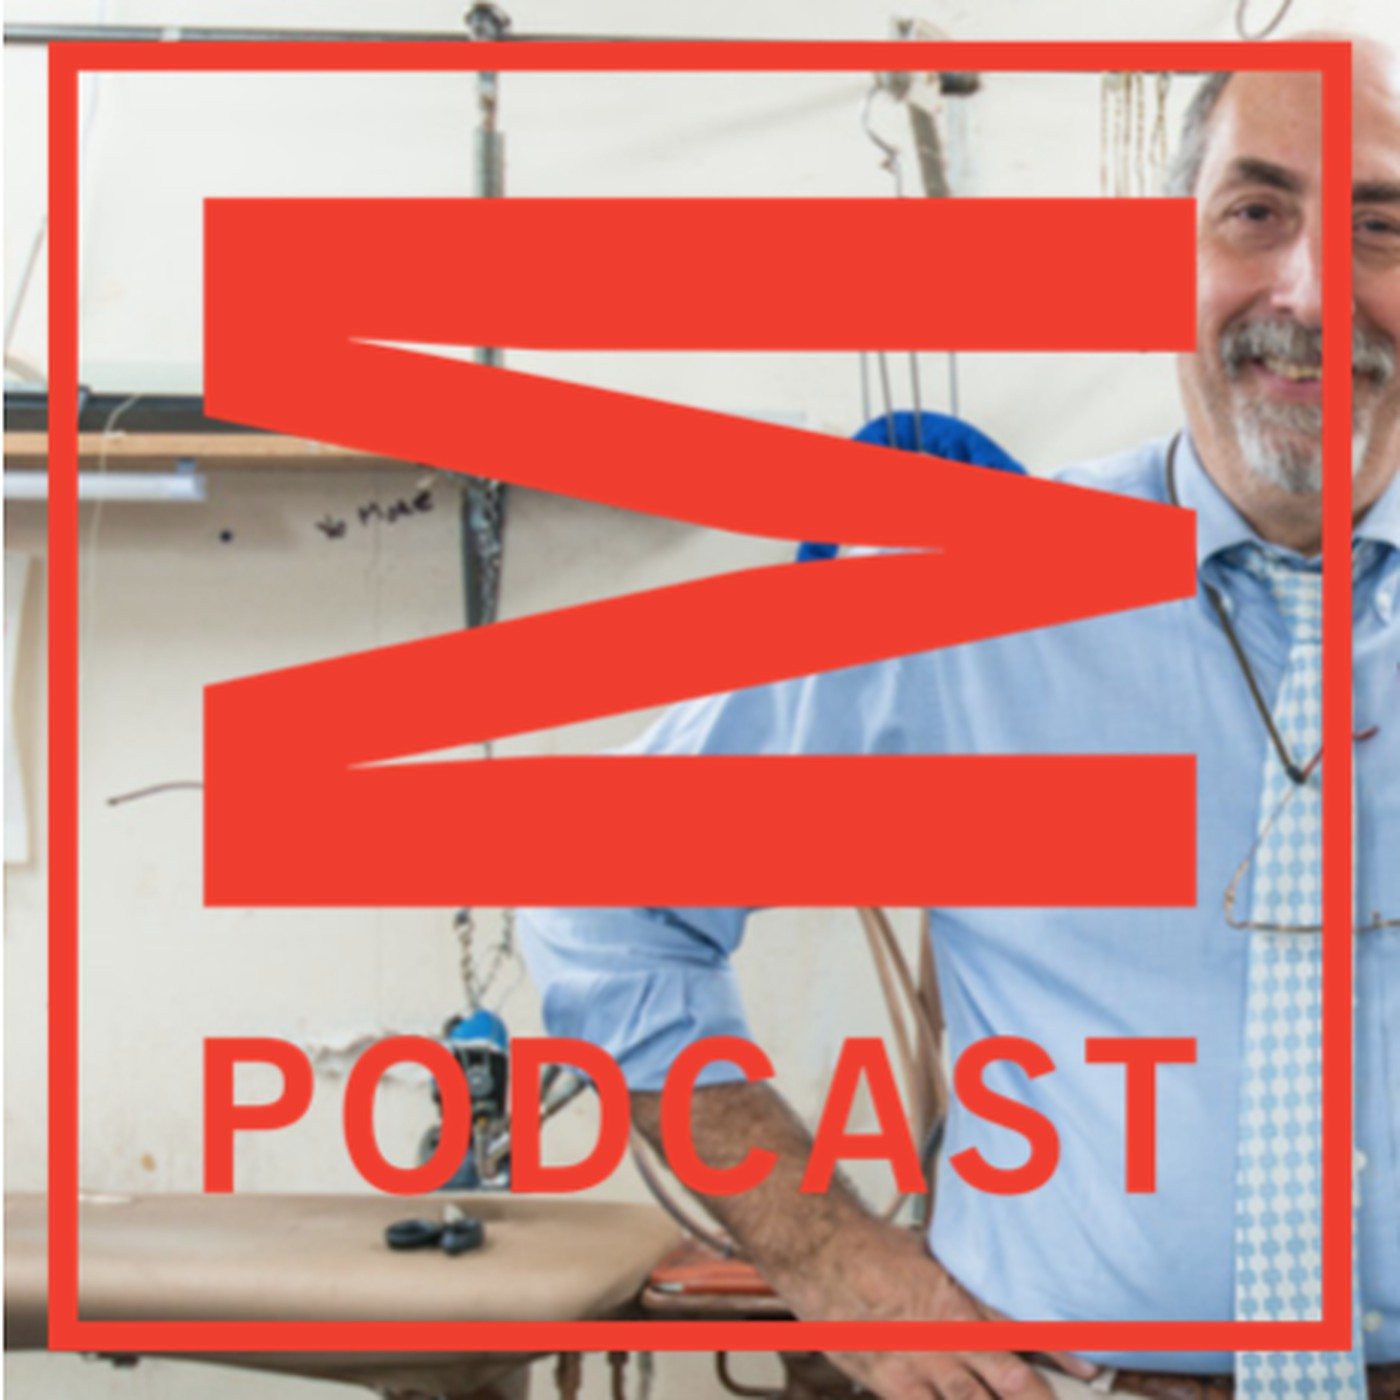 Episode 34: Andy Tarshis, Tiecrafters